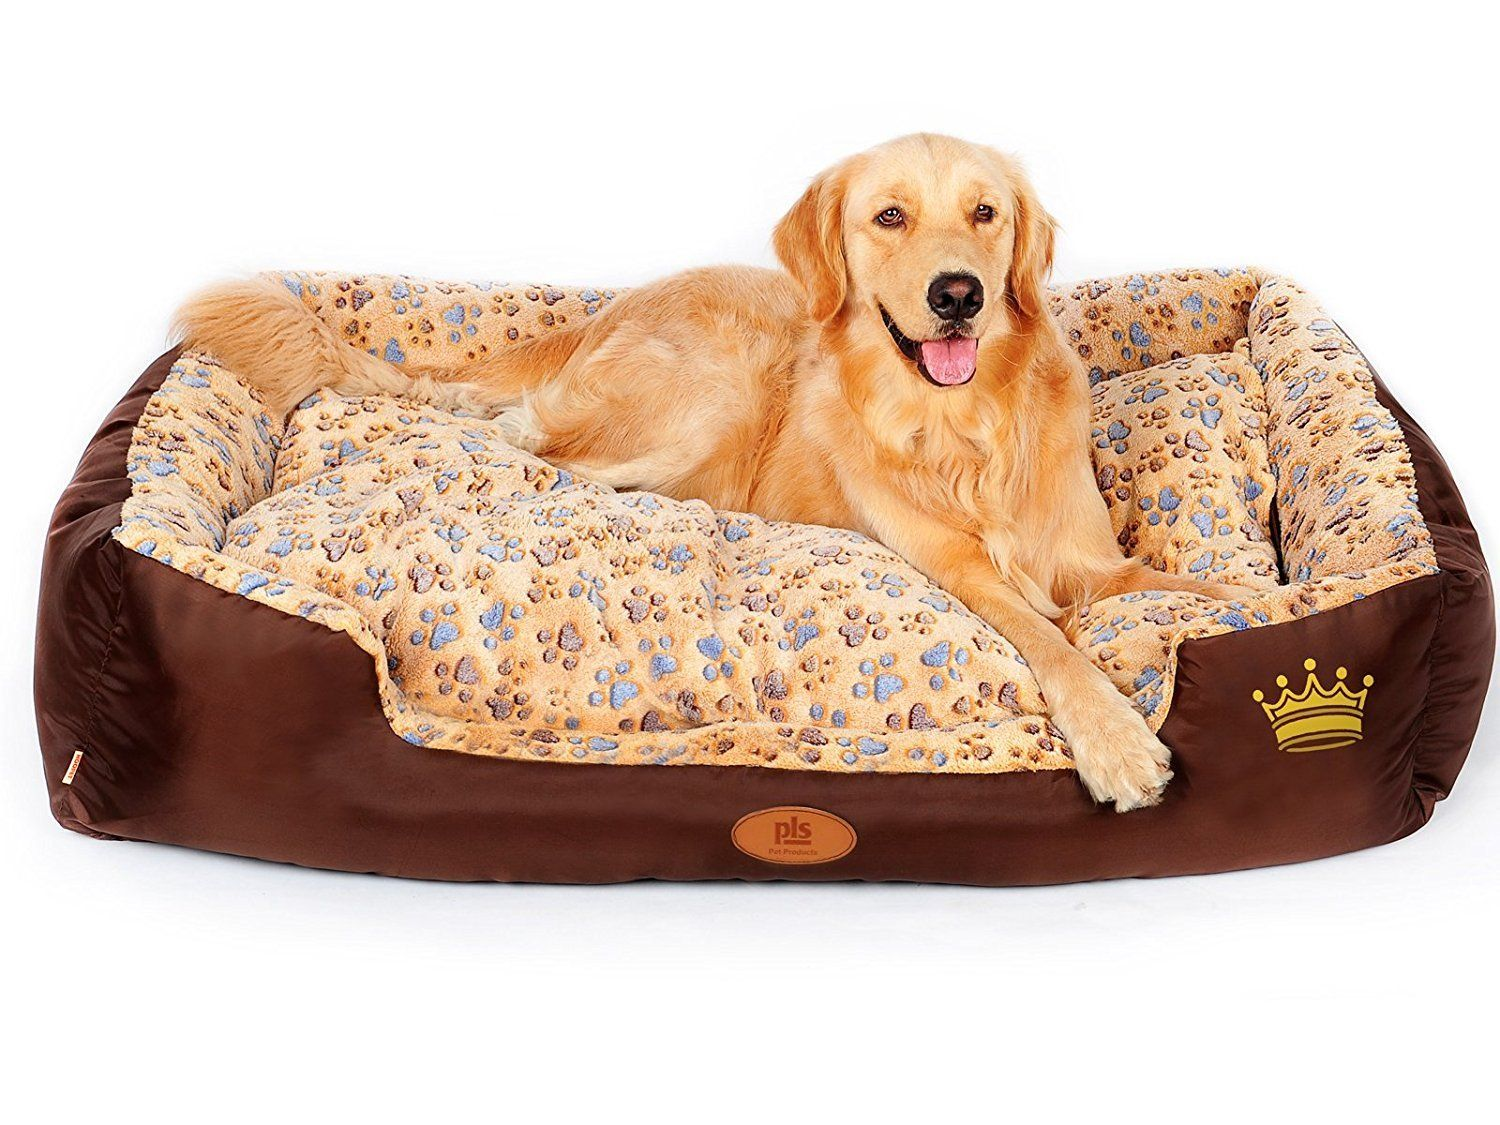 Pls Paradise Bolster Dog Bed With Pillow Extra Plush Completely